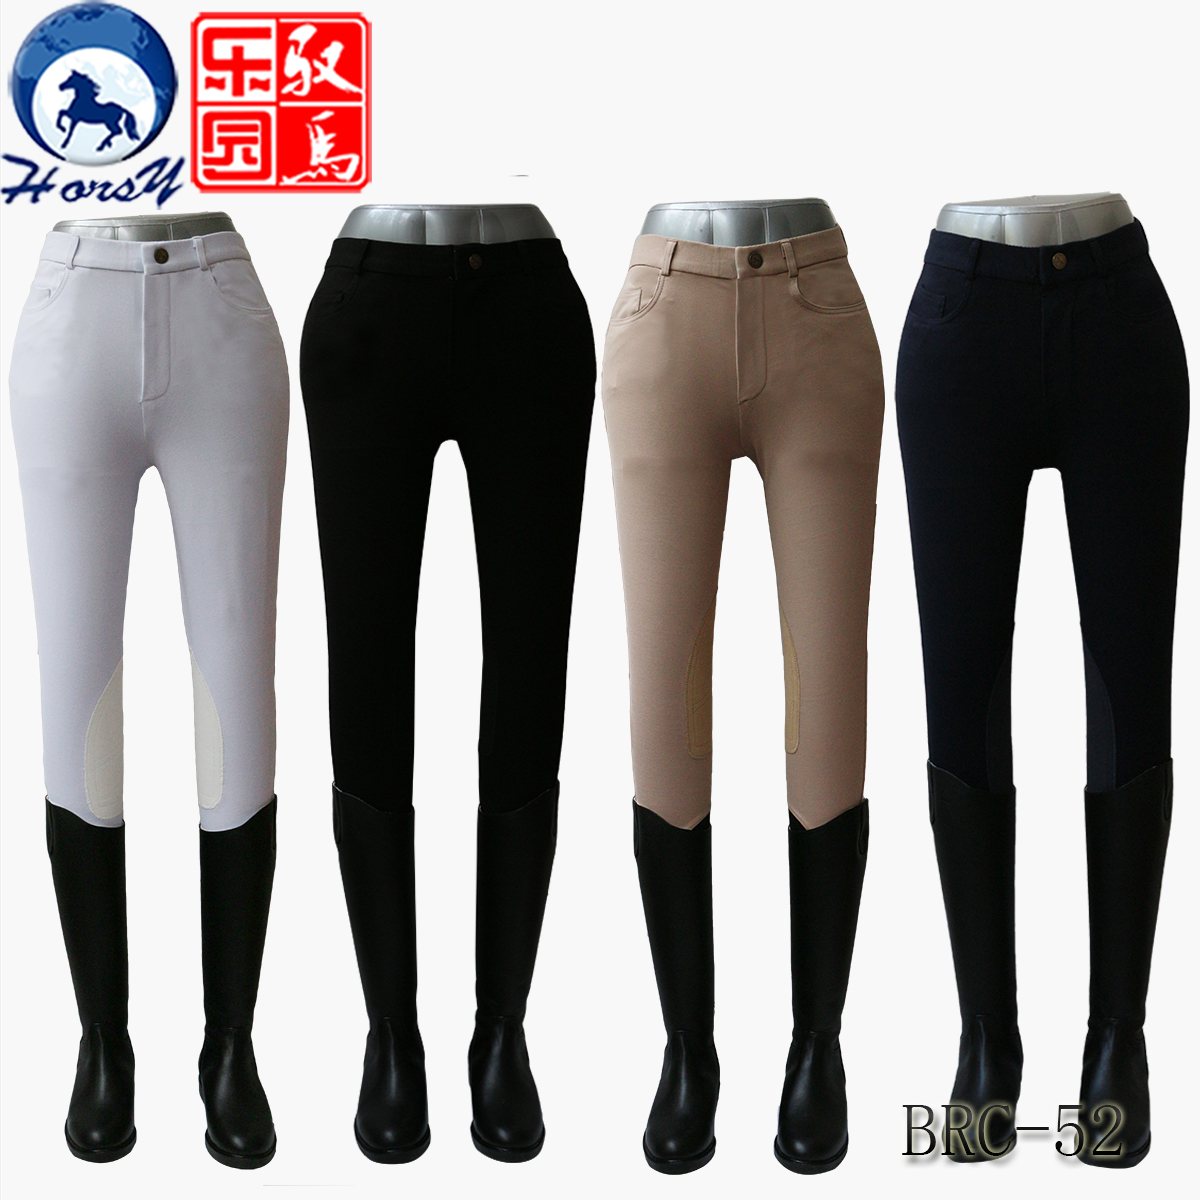 Usd 154 11 Horsy Equestrian Horse Pants Summer Professional Horse Riding Pants Super Bouncing Comfort Equestrian Equipment Men S And Women S Riding Wear Wholesale From China Online Shopping Buy Asian Products Online From